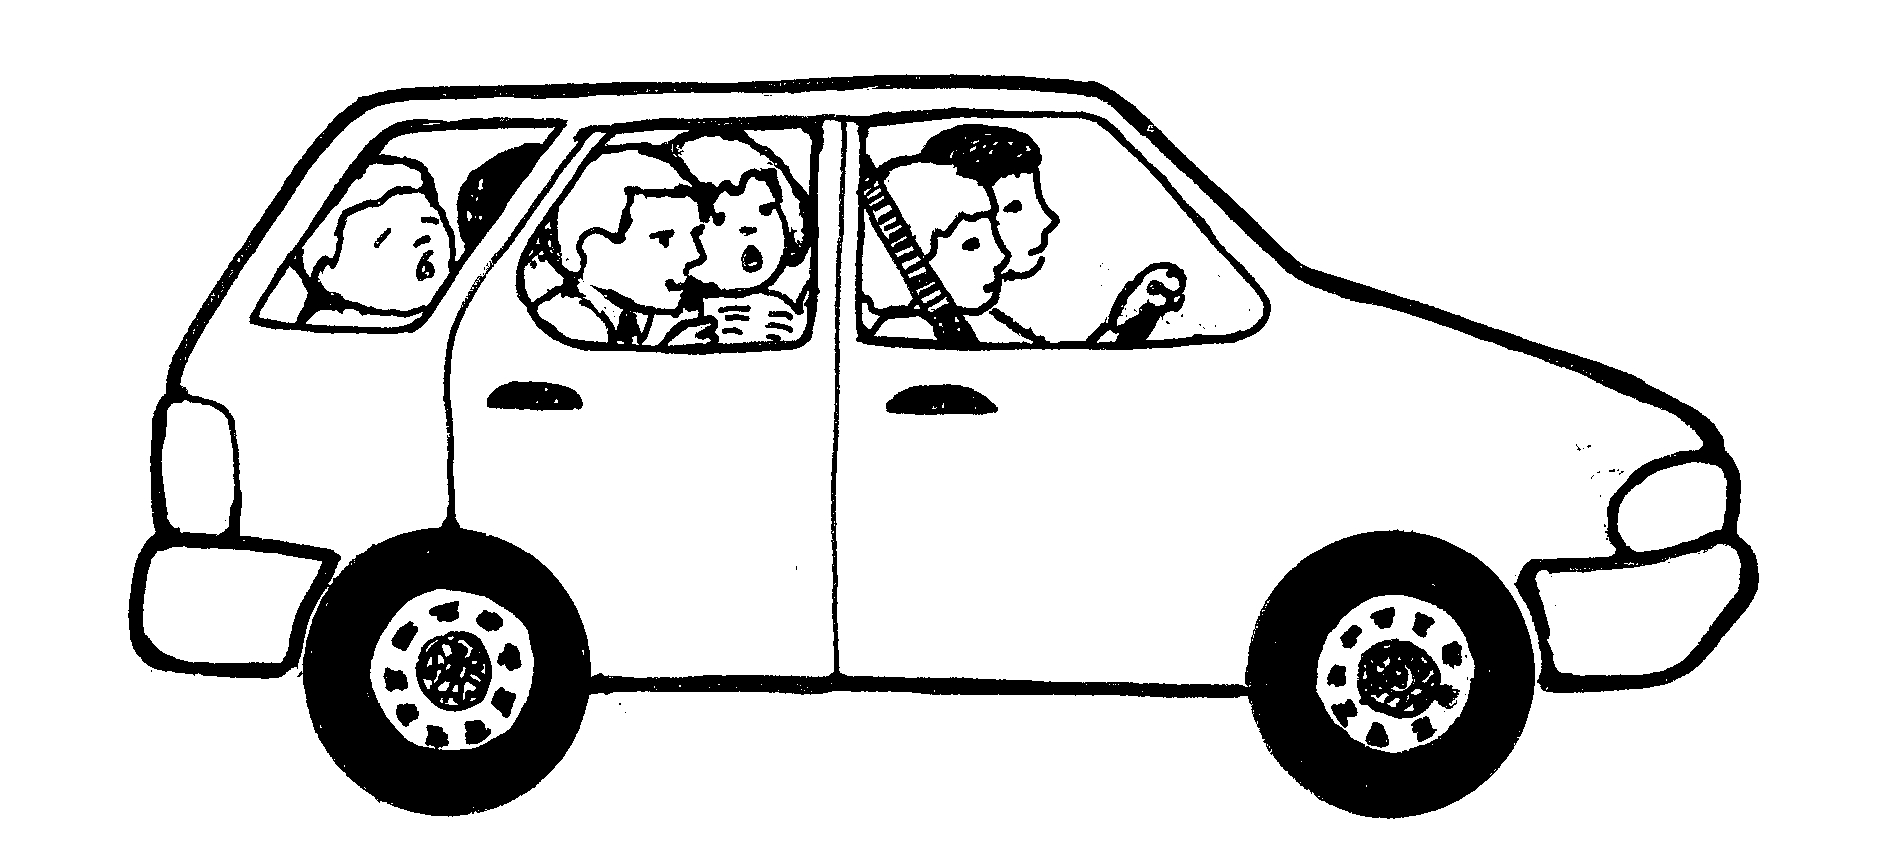 free clipart black and white car - photo #19